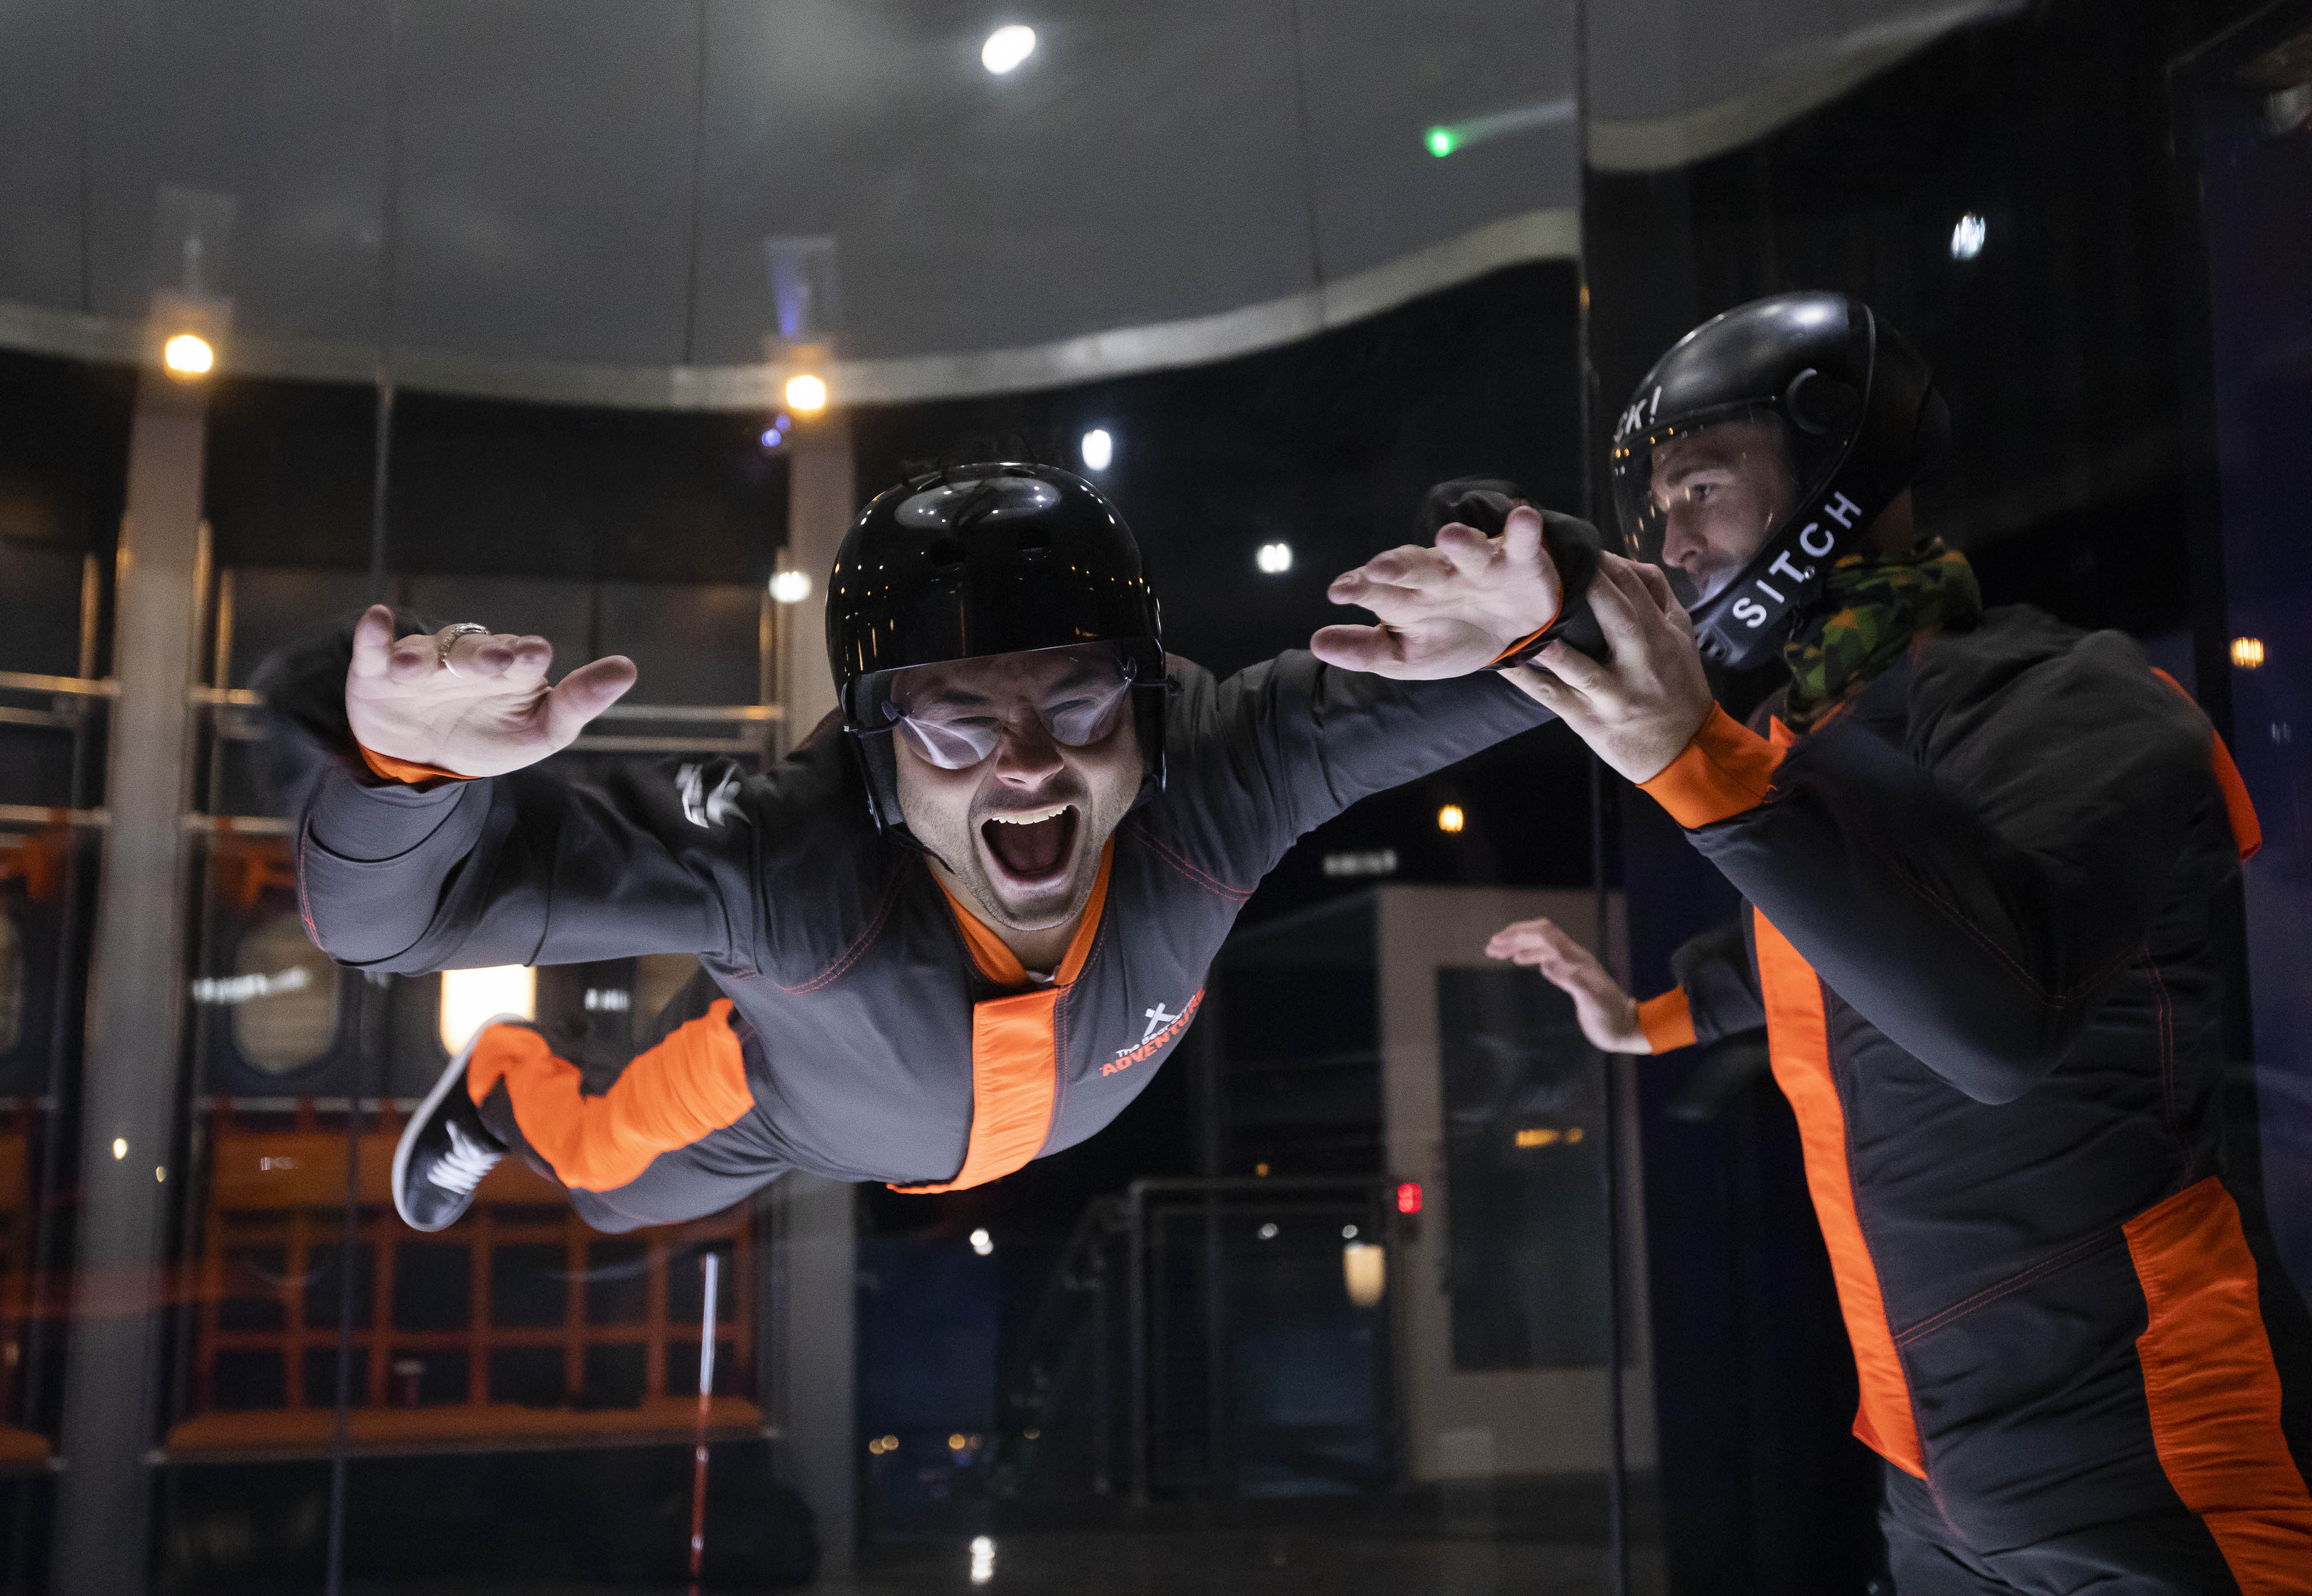 Man flies in iFLY indoor skydiving wind tunnel at The Bear Grylls Adventure Birmingham